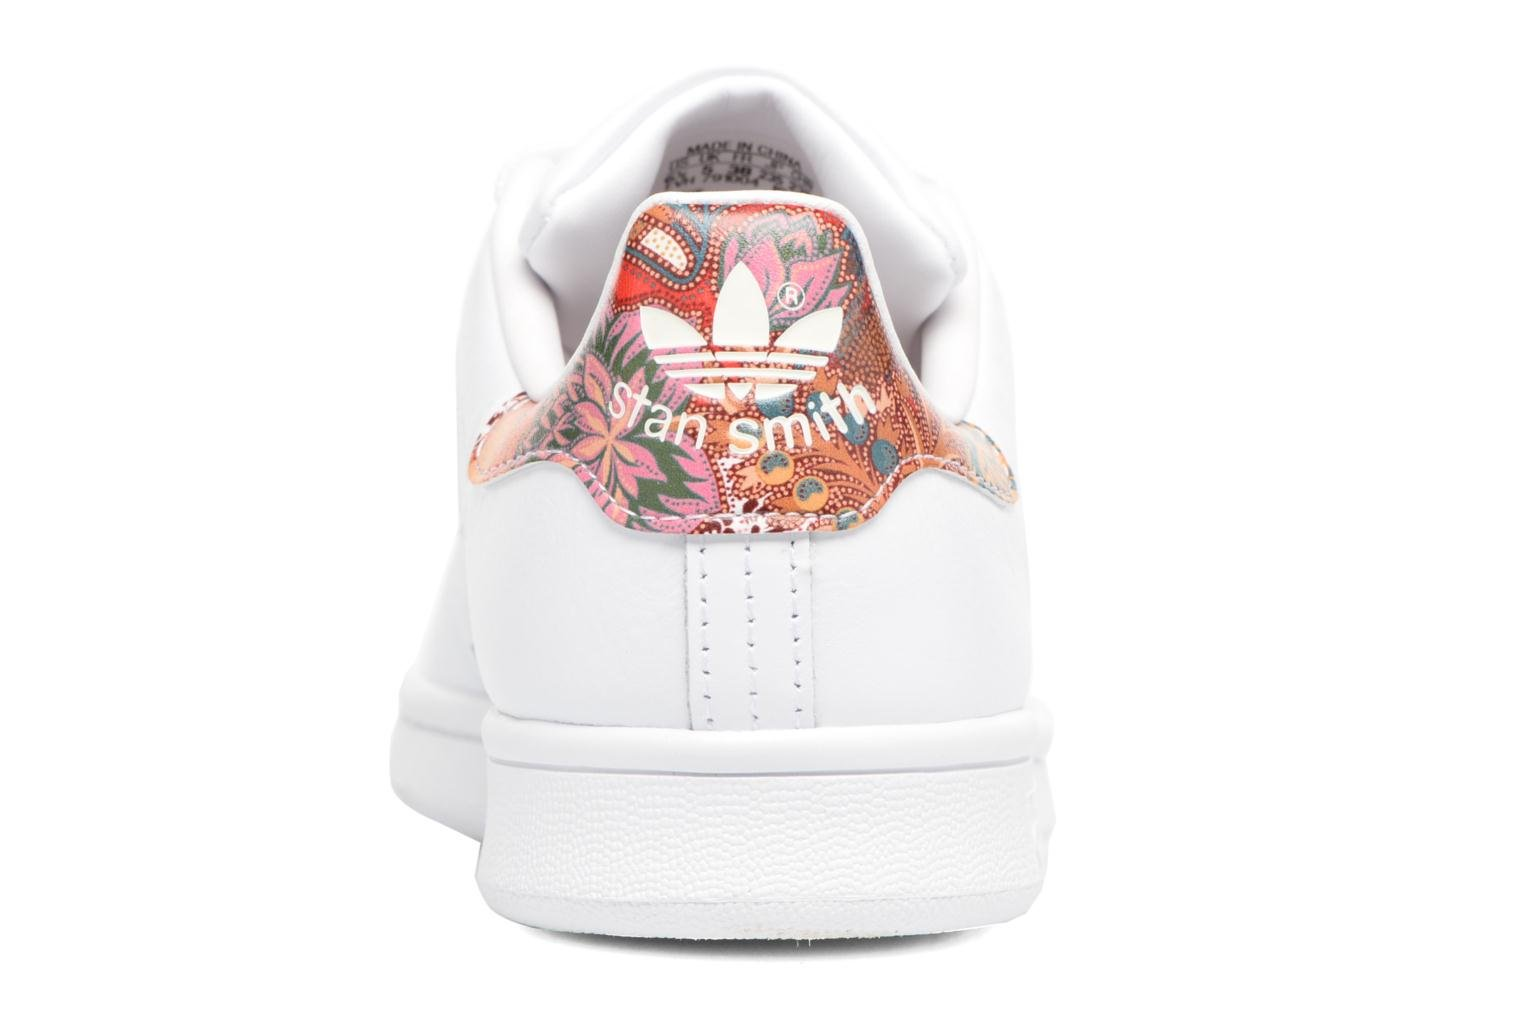 Stan Smith W Ftwbla/Ftwbla/multi